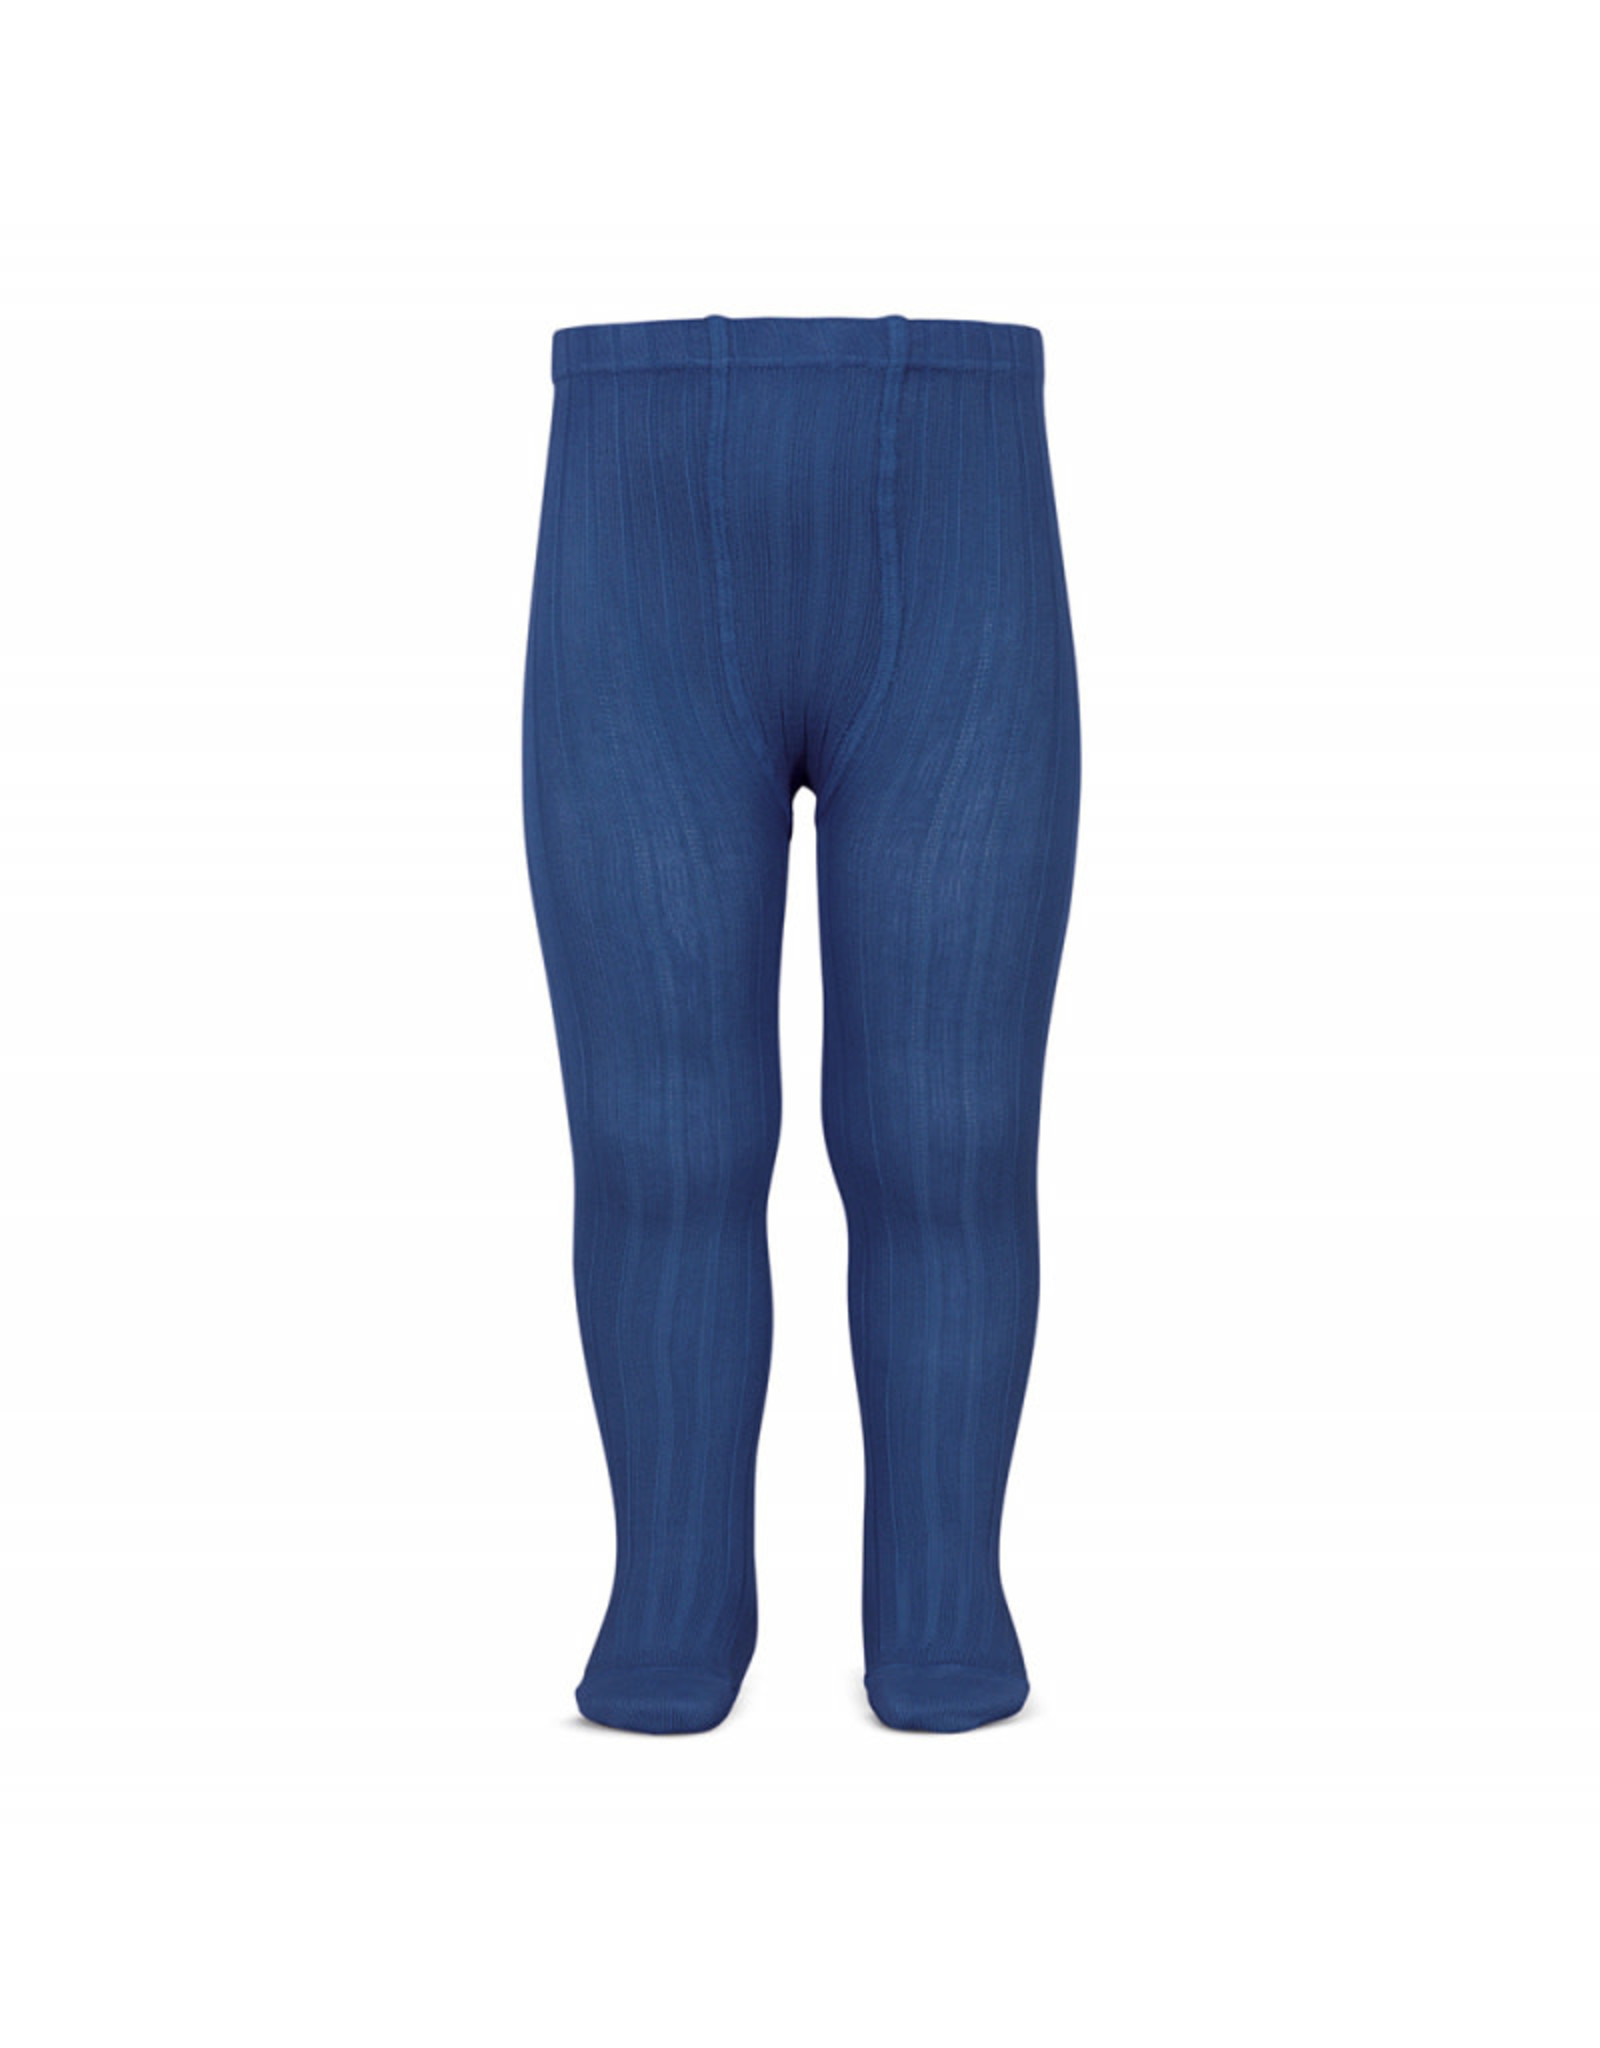 CONDOR Indigo Blue Rib Tights